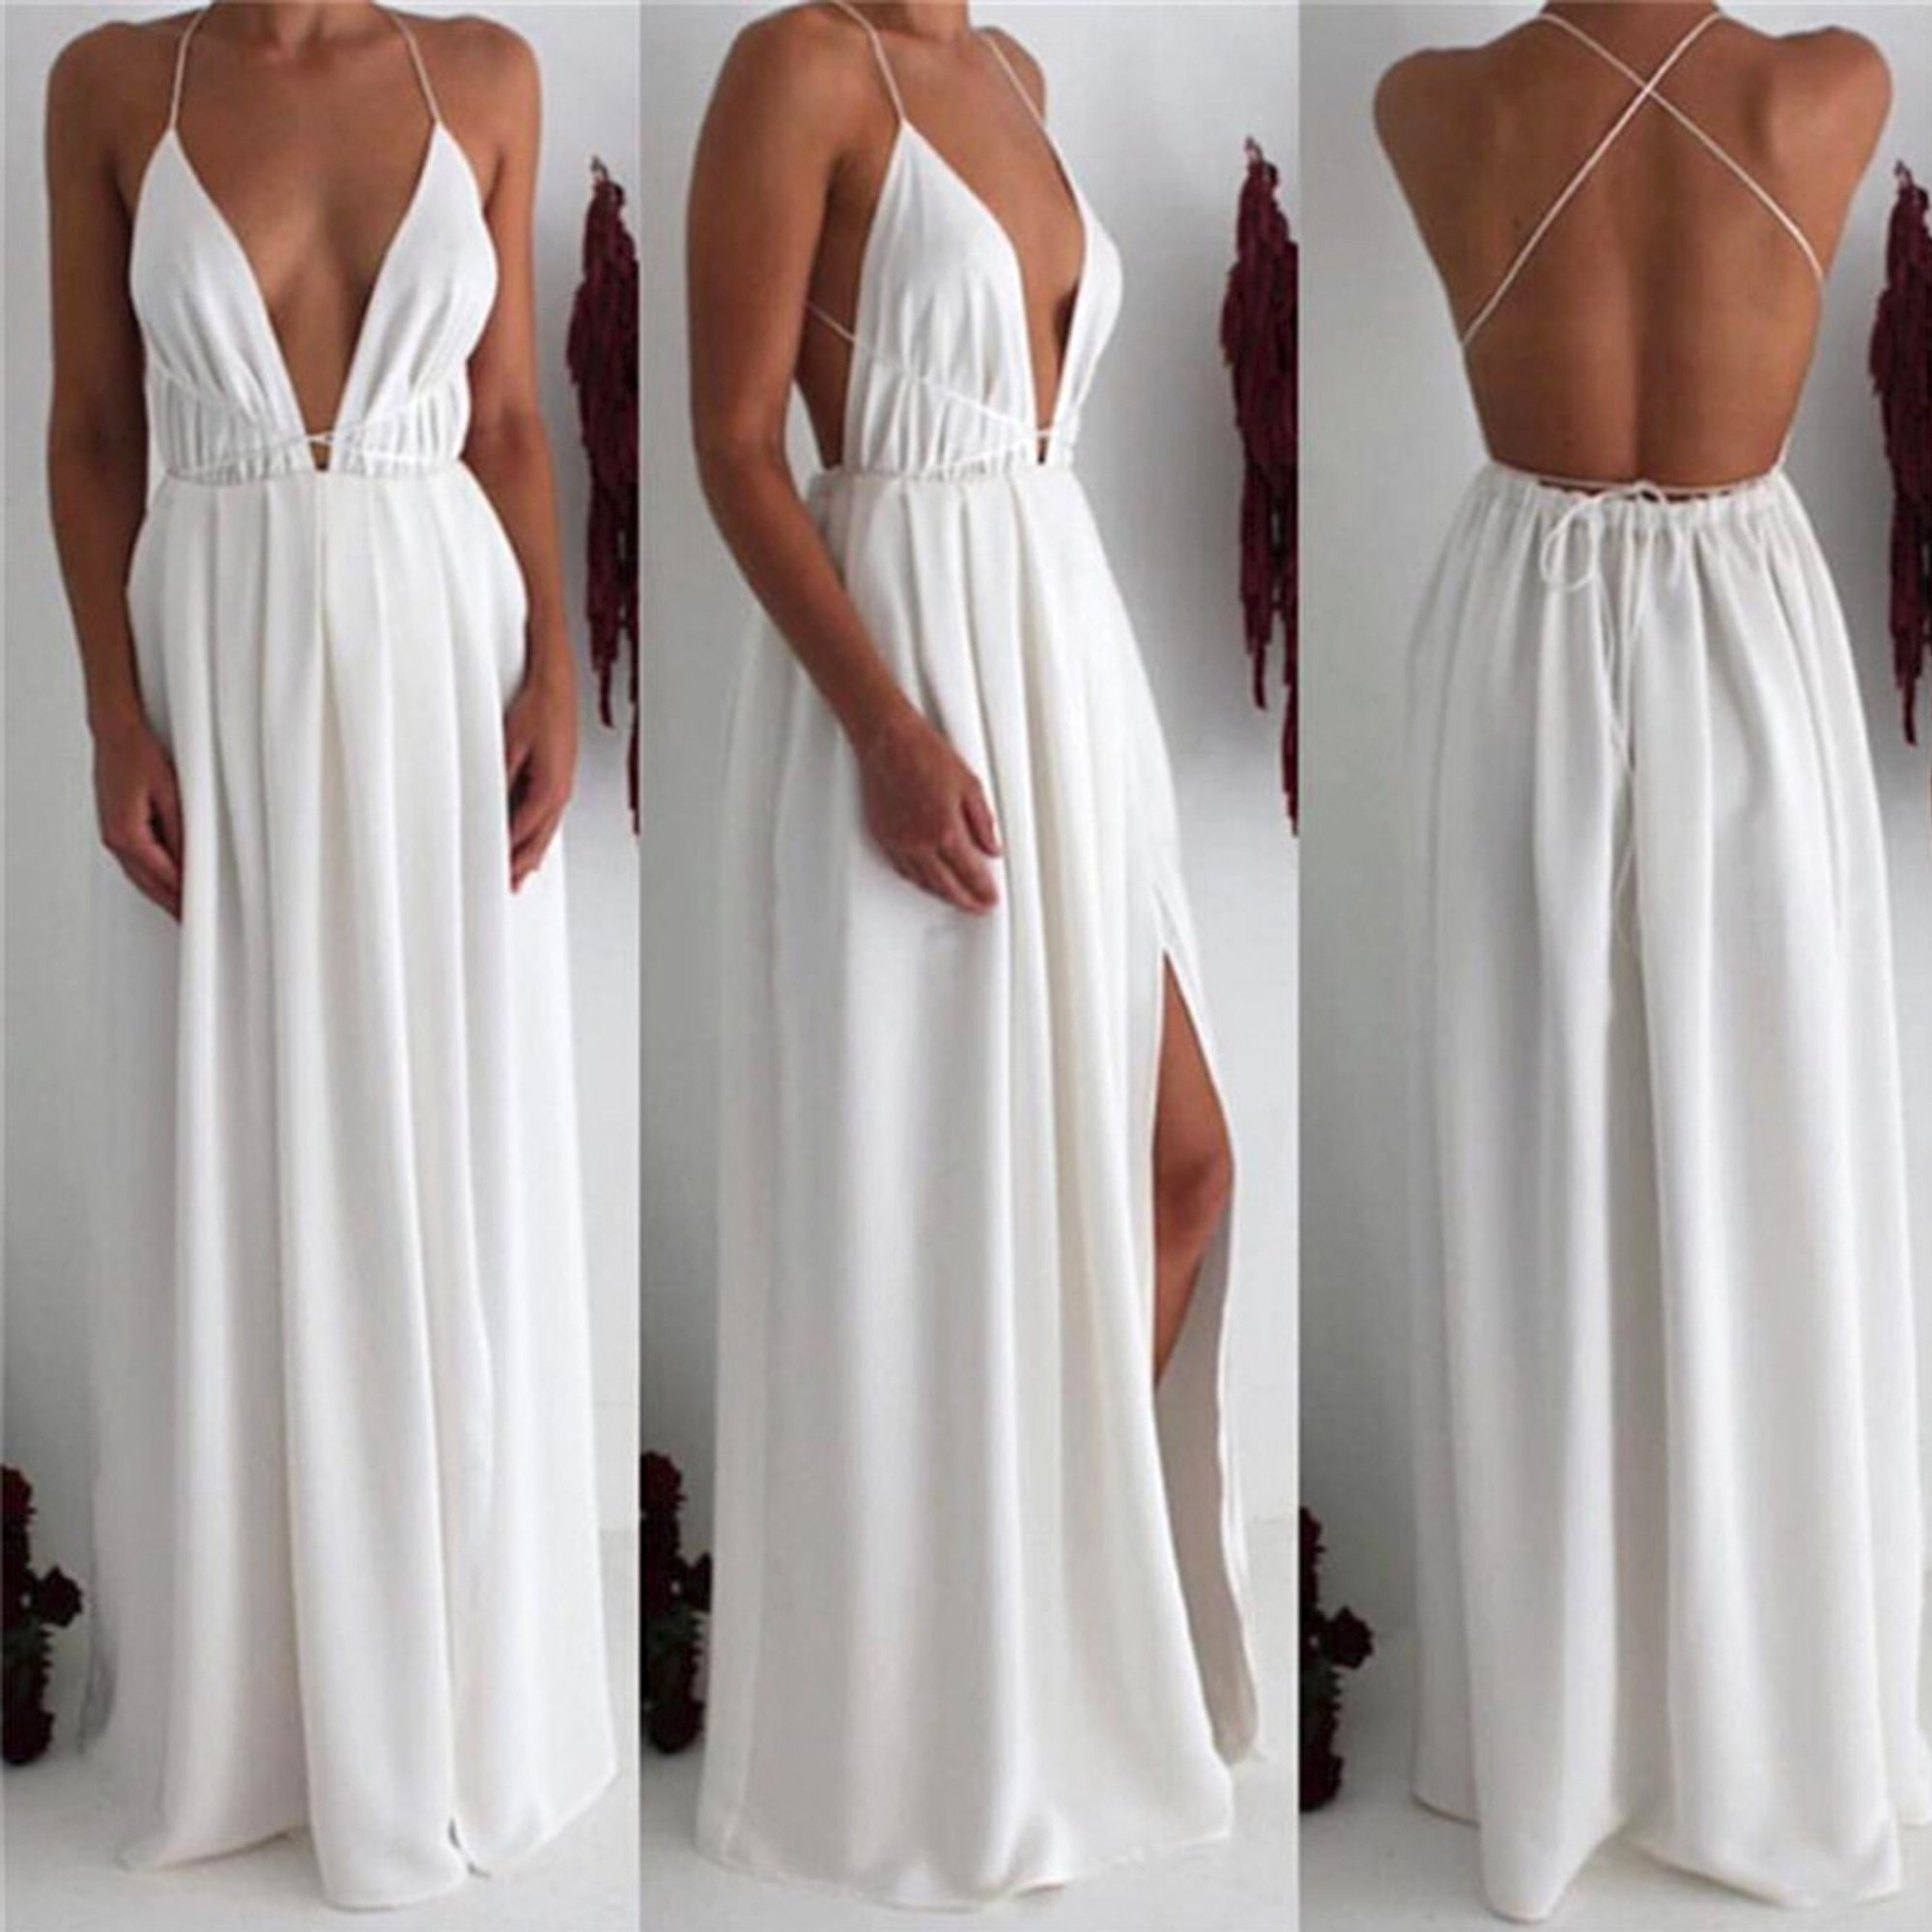 5f227c3883 PRODUCT DETAILS - Maxi dress - Long - Backless - Strappy - Chiffon - Slit